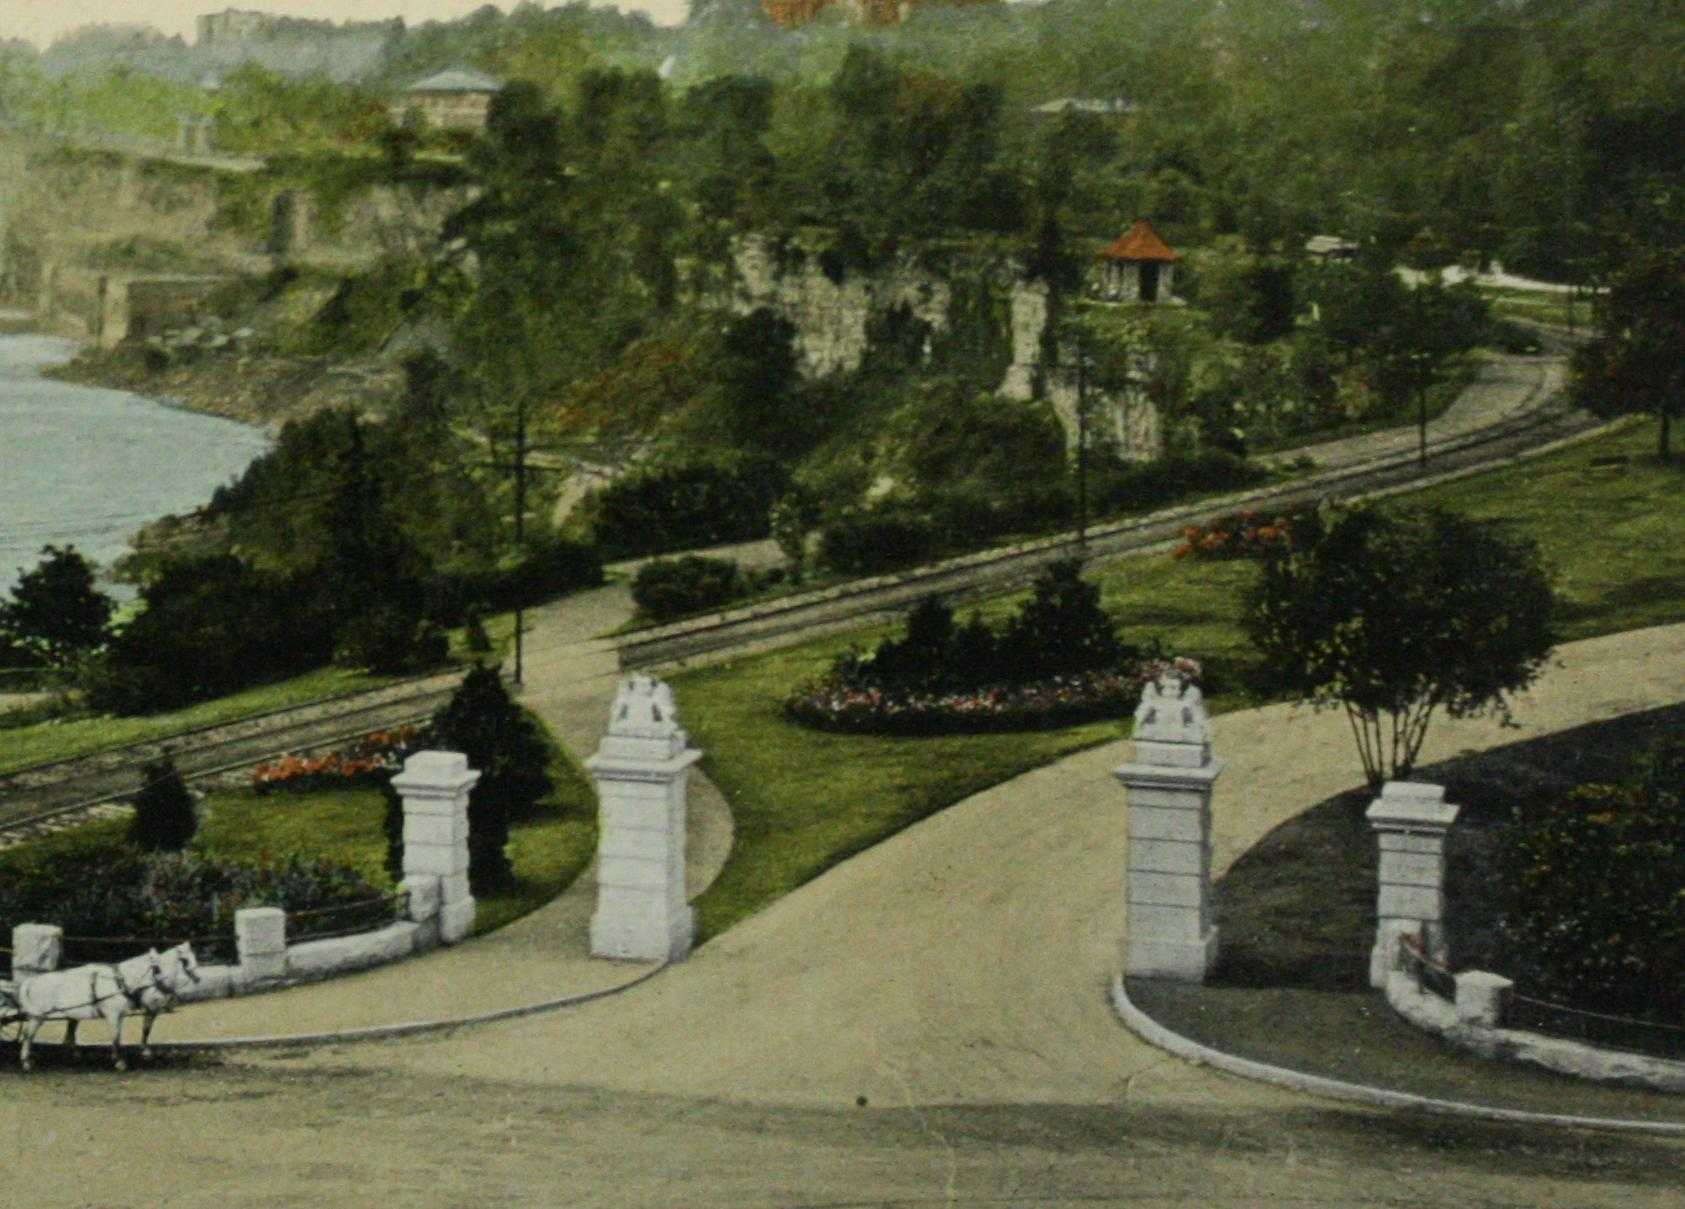 Mowat Gate at the entrance of Victoria Park. Colourised photo of the Victoria park, located on today's Clifton Hill. Horse and buggy appear at far left of the image; two white, stone columns mark the entrance to the Park, atop these stand the shields of Canada. A train track reaches around the outside of the park and a pathway leads down the Parkway to the Falls, which is located off shot to the left. A power station is visitble atop Murray Hill and the out-flows into the River below. A small building, possibly rambler's rest, is midway between the camera and the Falls. Trees dot the foreground but many appear in the background. There are gardens with small shrubs and beds of flowers in the foreground in the park.